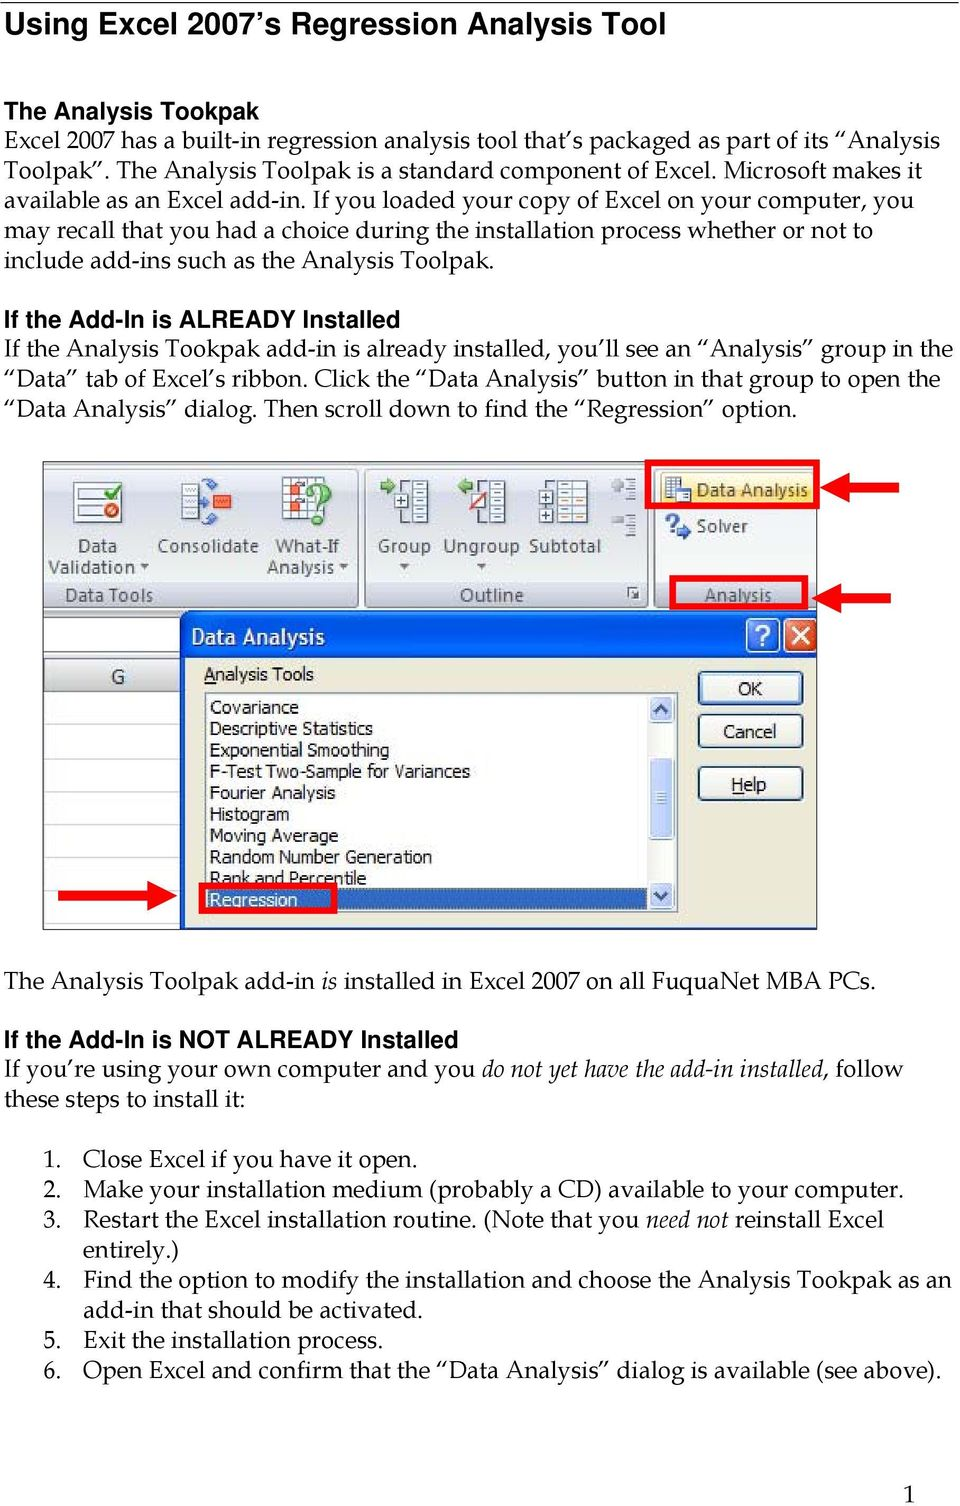 If you loaded your copy of Excel on your computer, you may recall that you had a choice during the installation process whether or not to include add-ins such as the Analysis Toolpak.